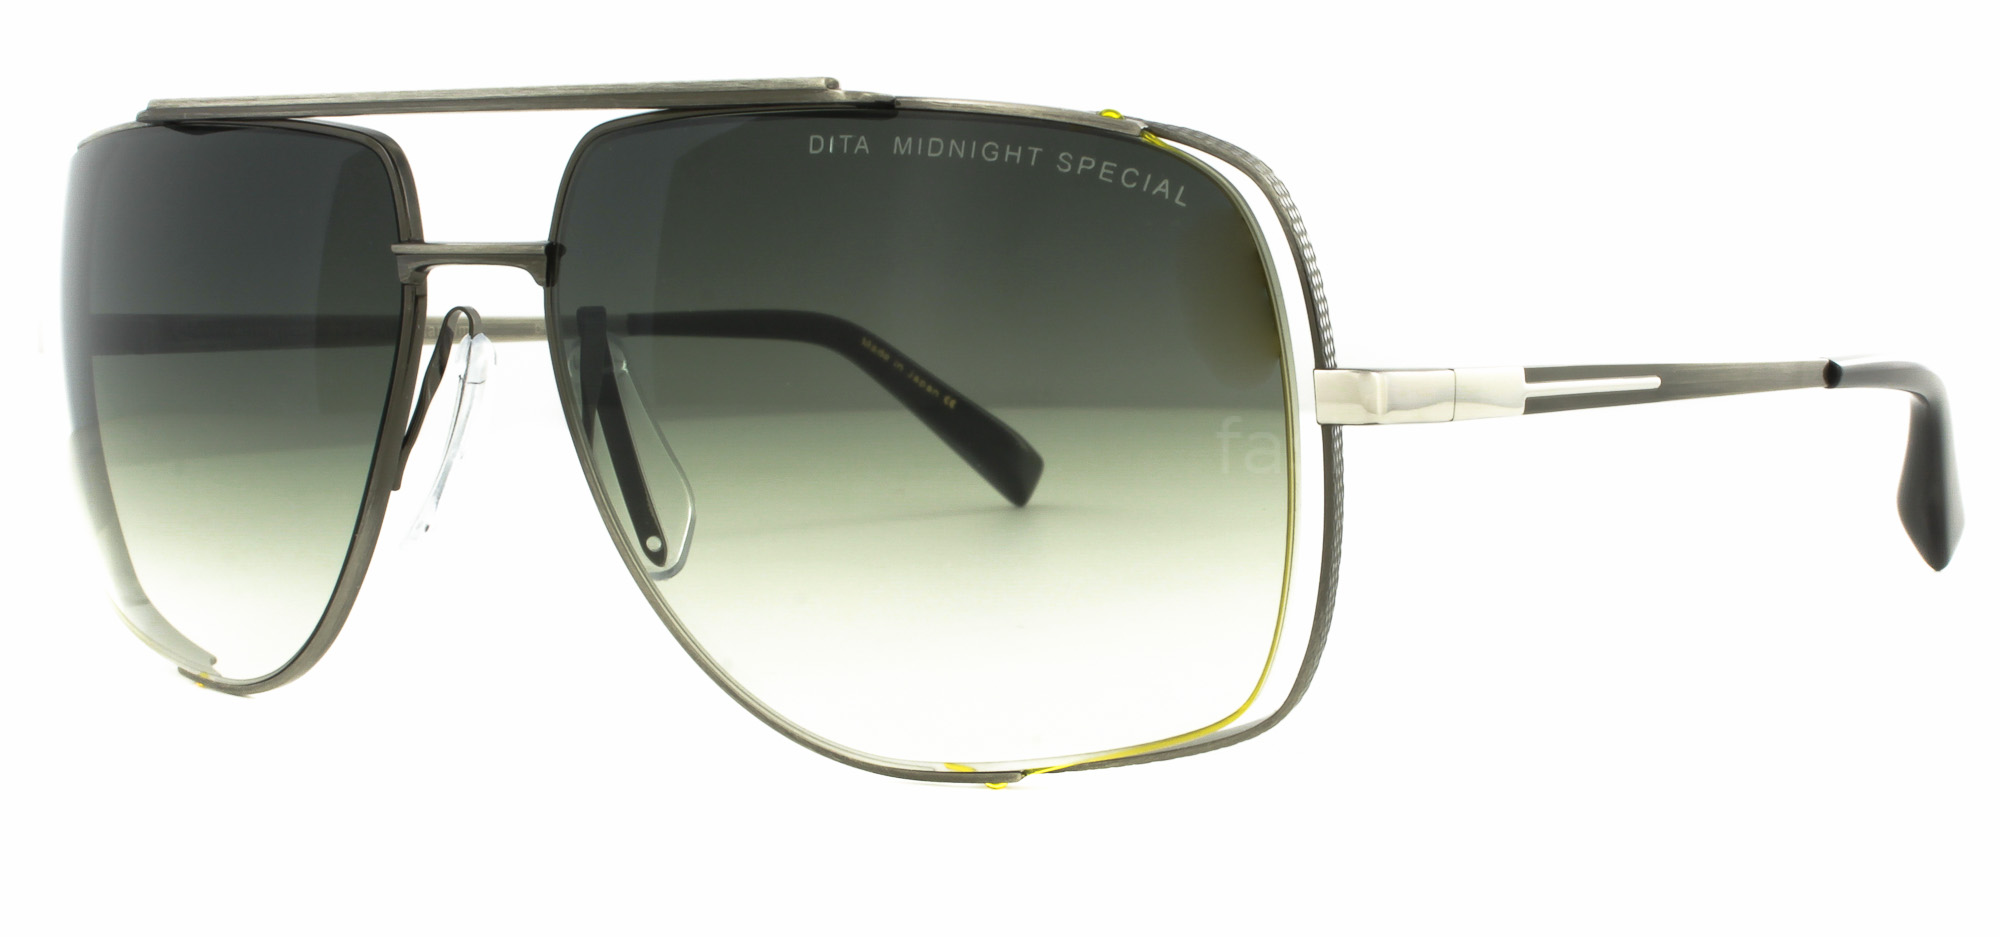 6471dbe7b0 Dita Sunglass Price In India And Models